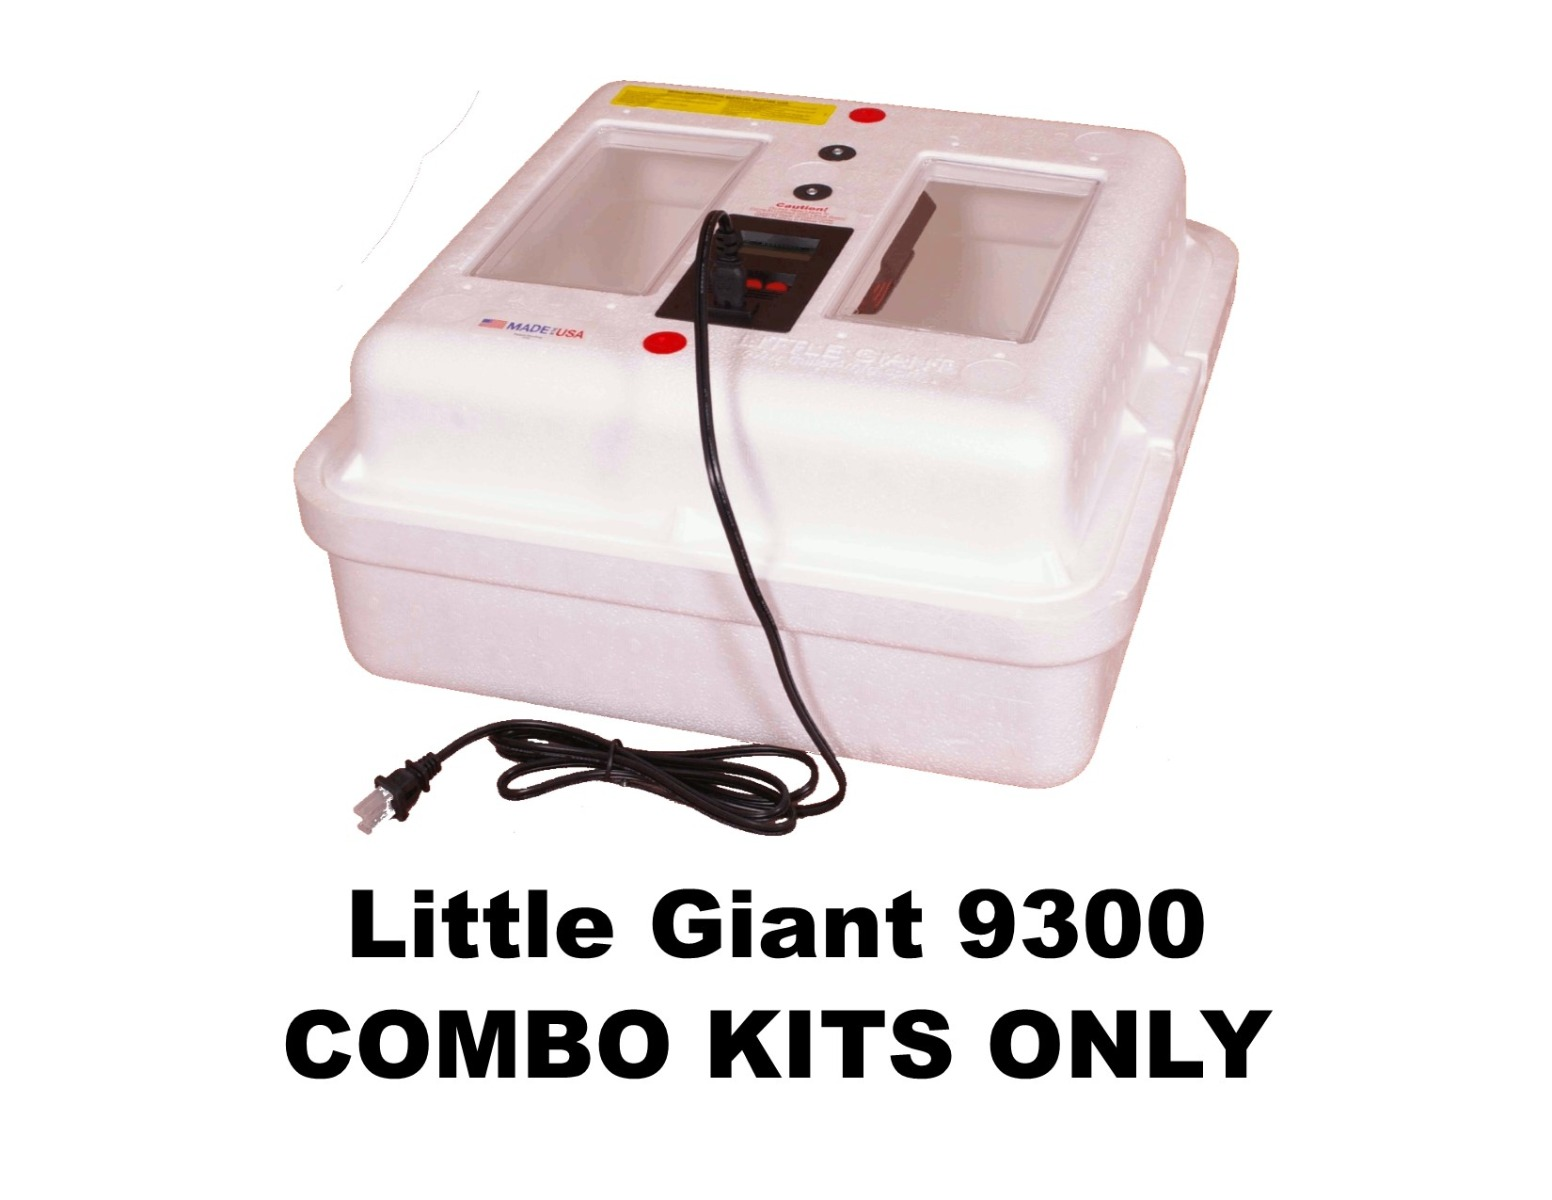 Little Giant 9300 Combo Kits